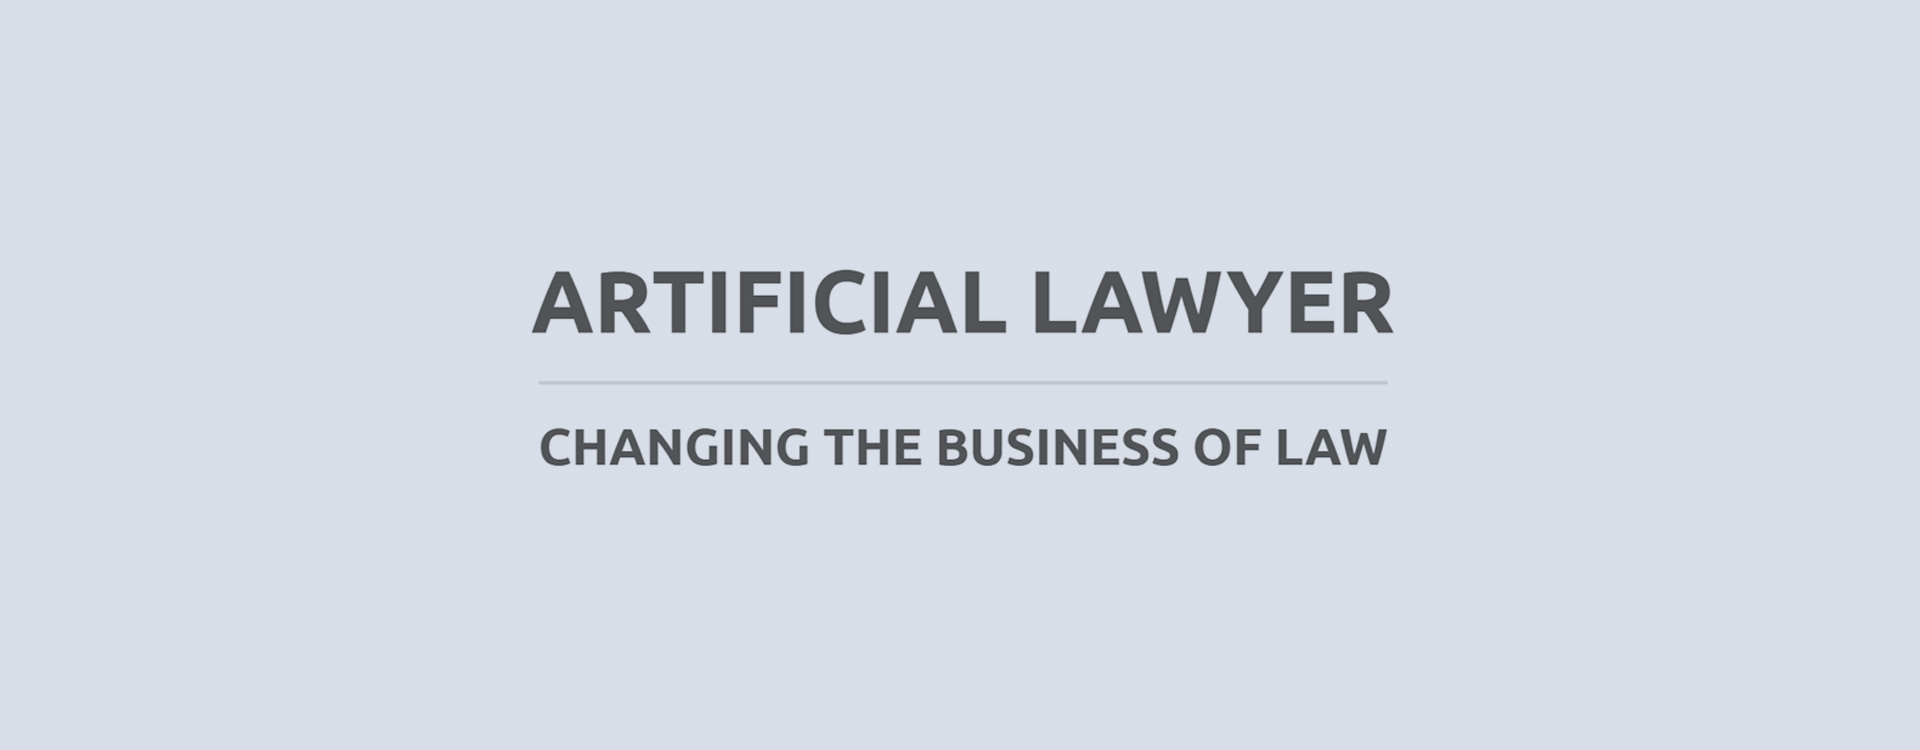 Artificial Lawyer - Changing the Business of Law